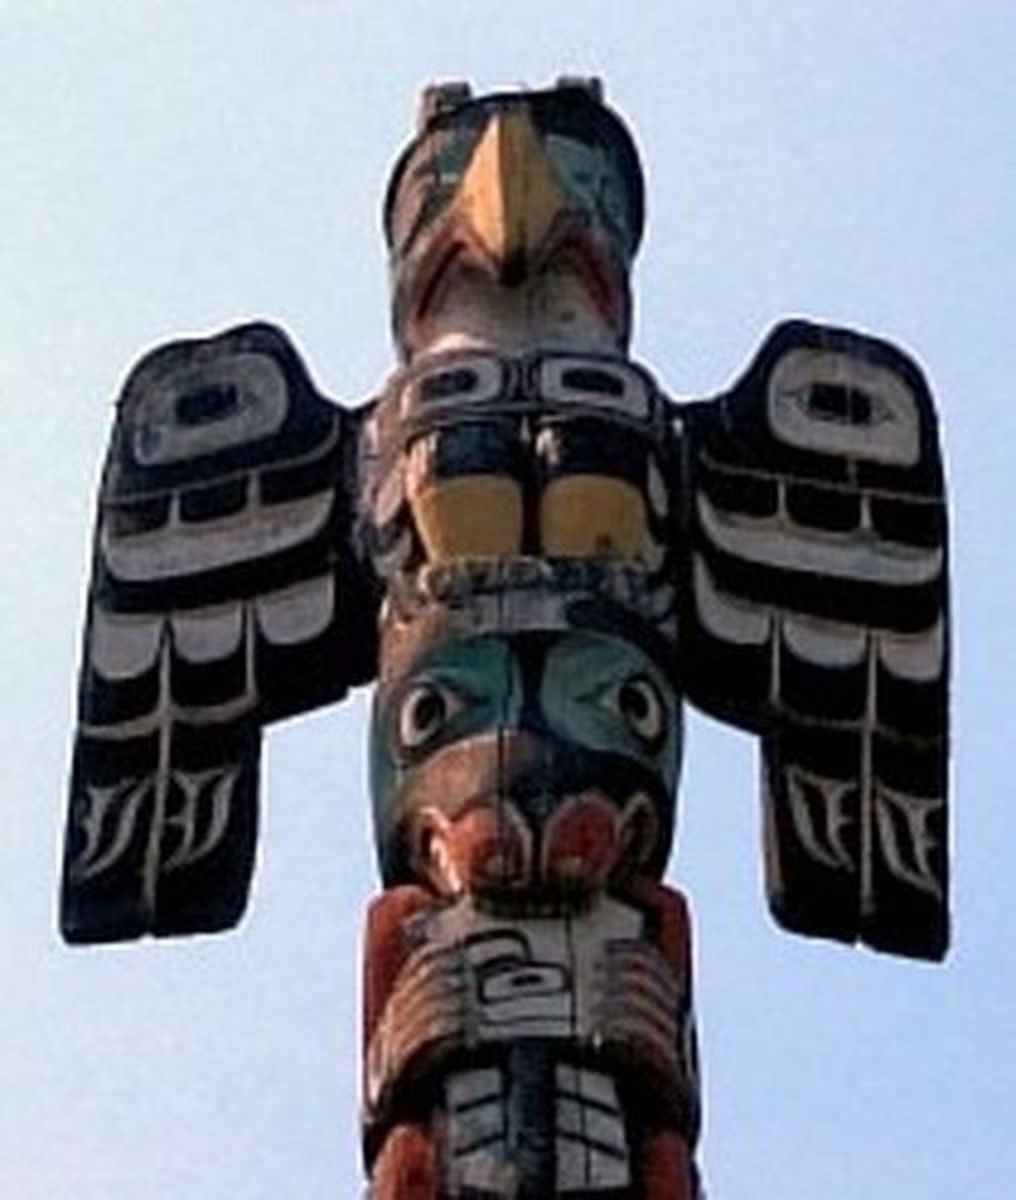 Thunderbird, top of totem pole in the Pacific Northwest